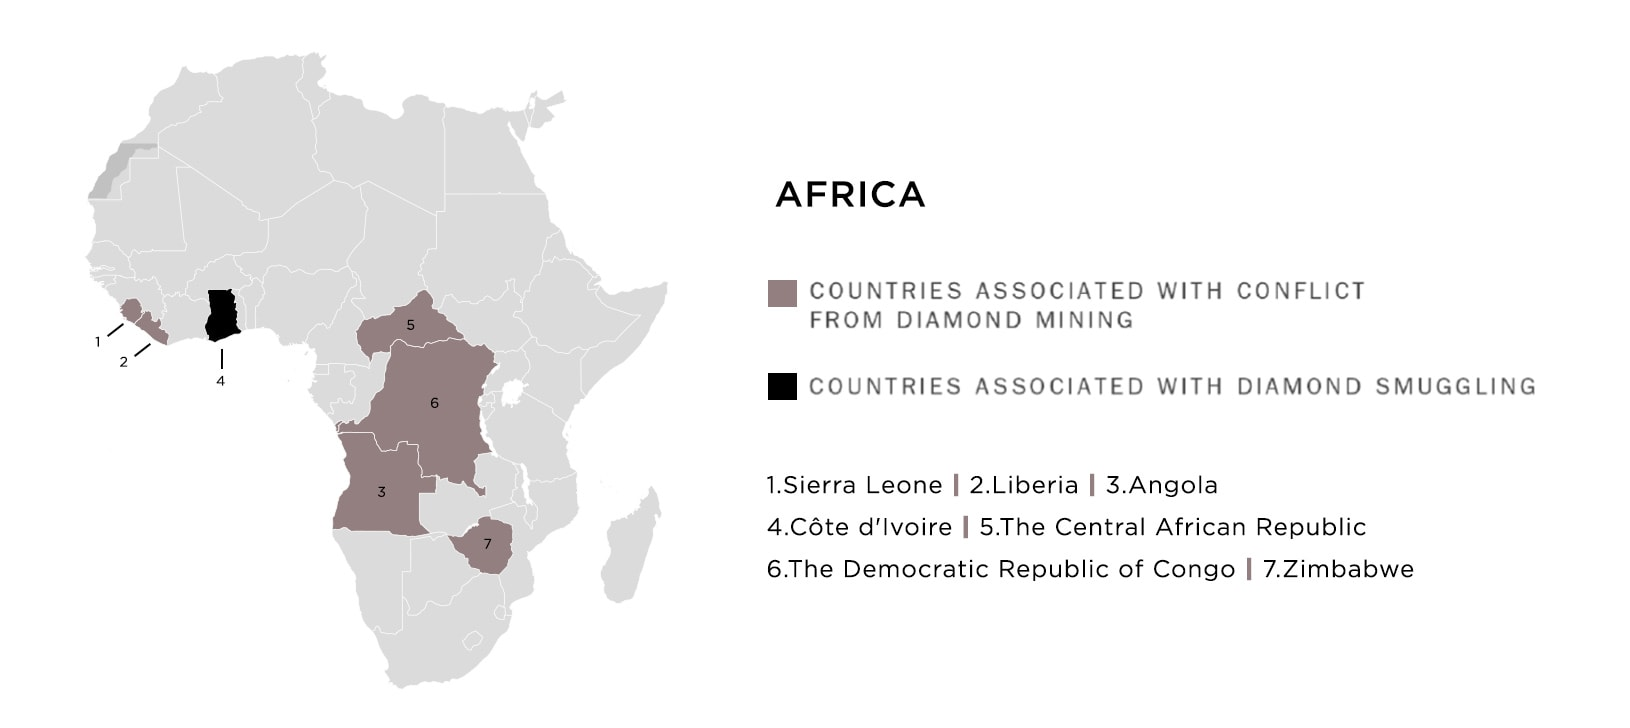 Map of countries in Africa associated with conflict and smuggling